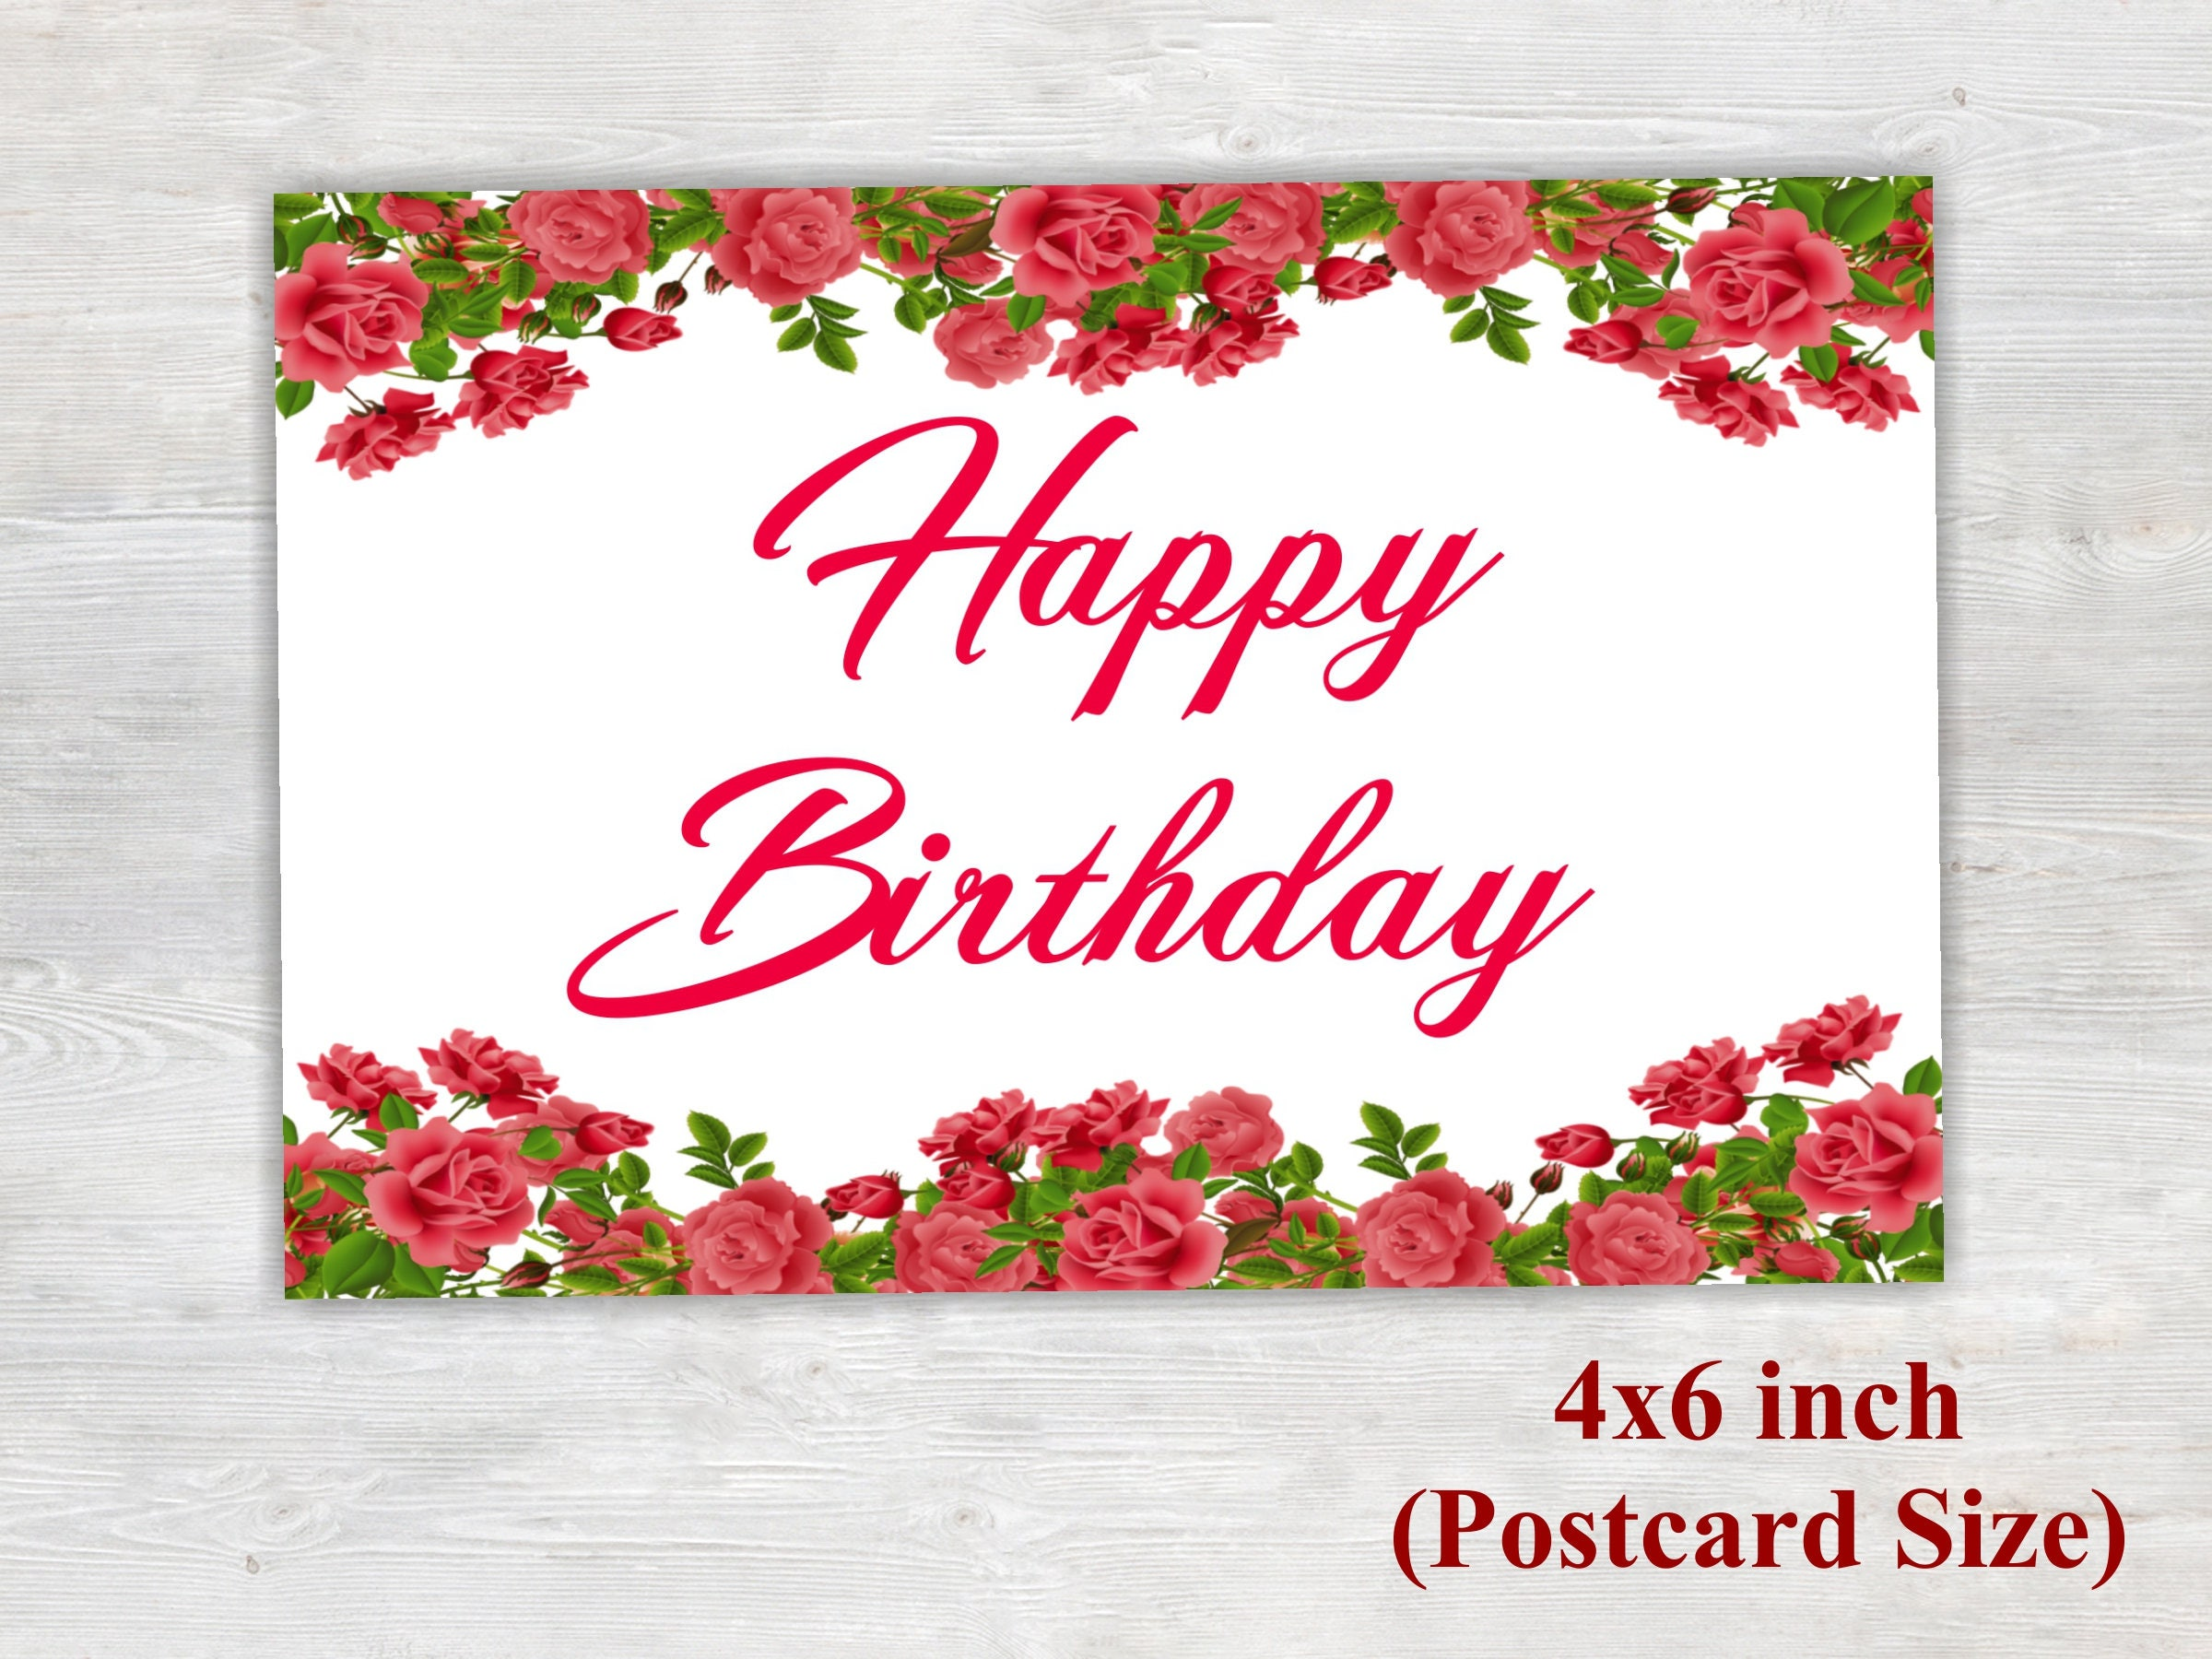 Birthday Card Print Out Image collections Free Birthday Cards